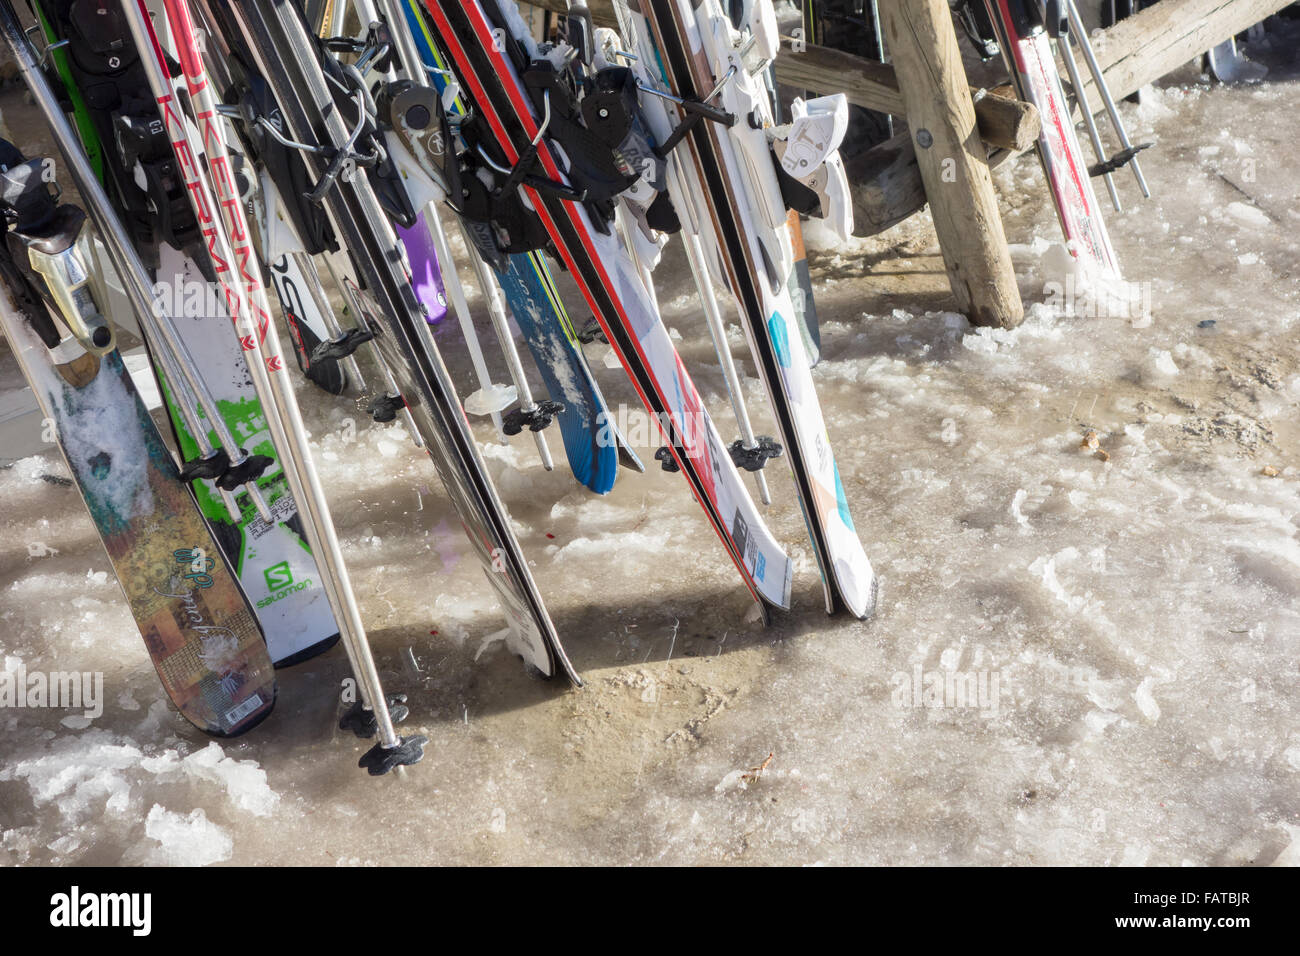 skis in ski rack on melting snow during unseasonably warm weather - Courchevel, France - Stock Image